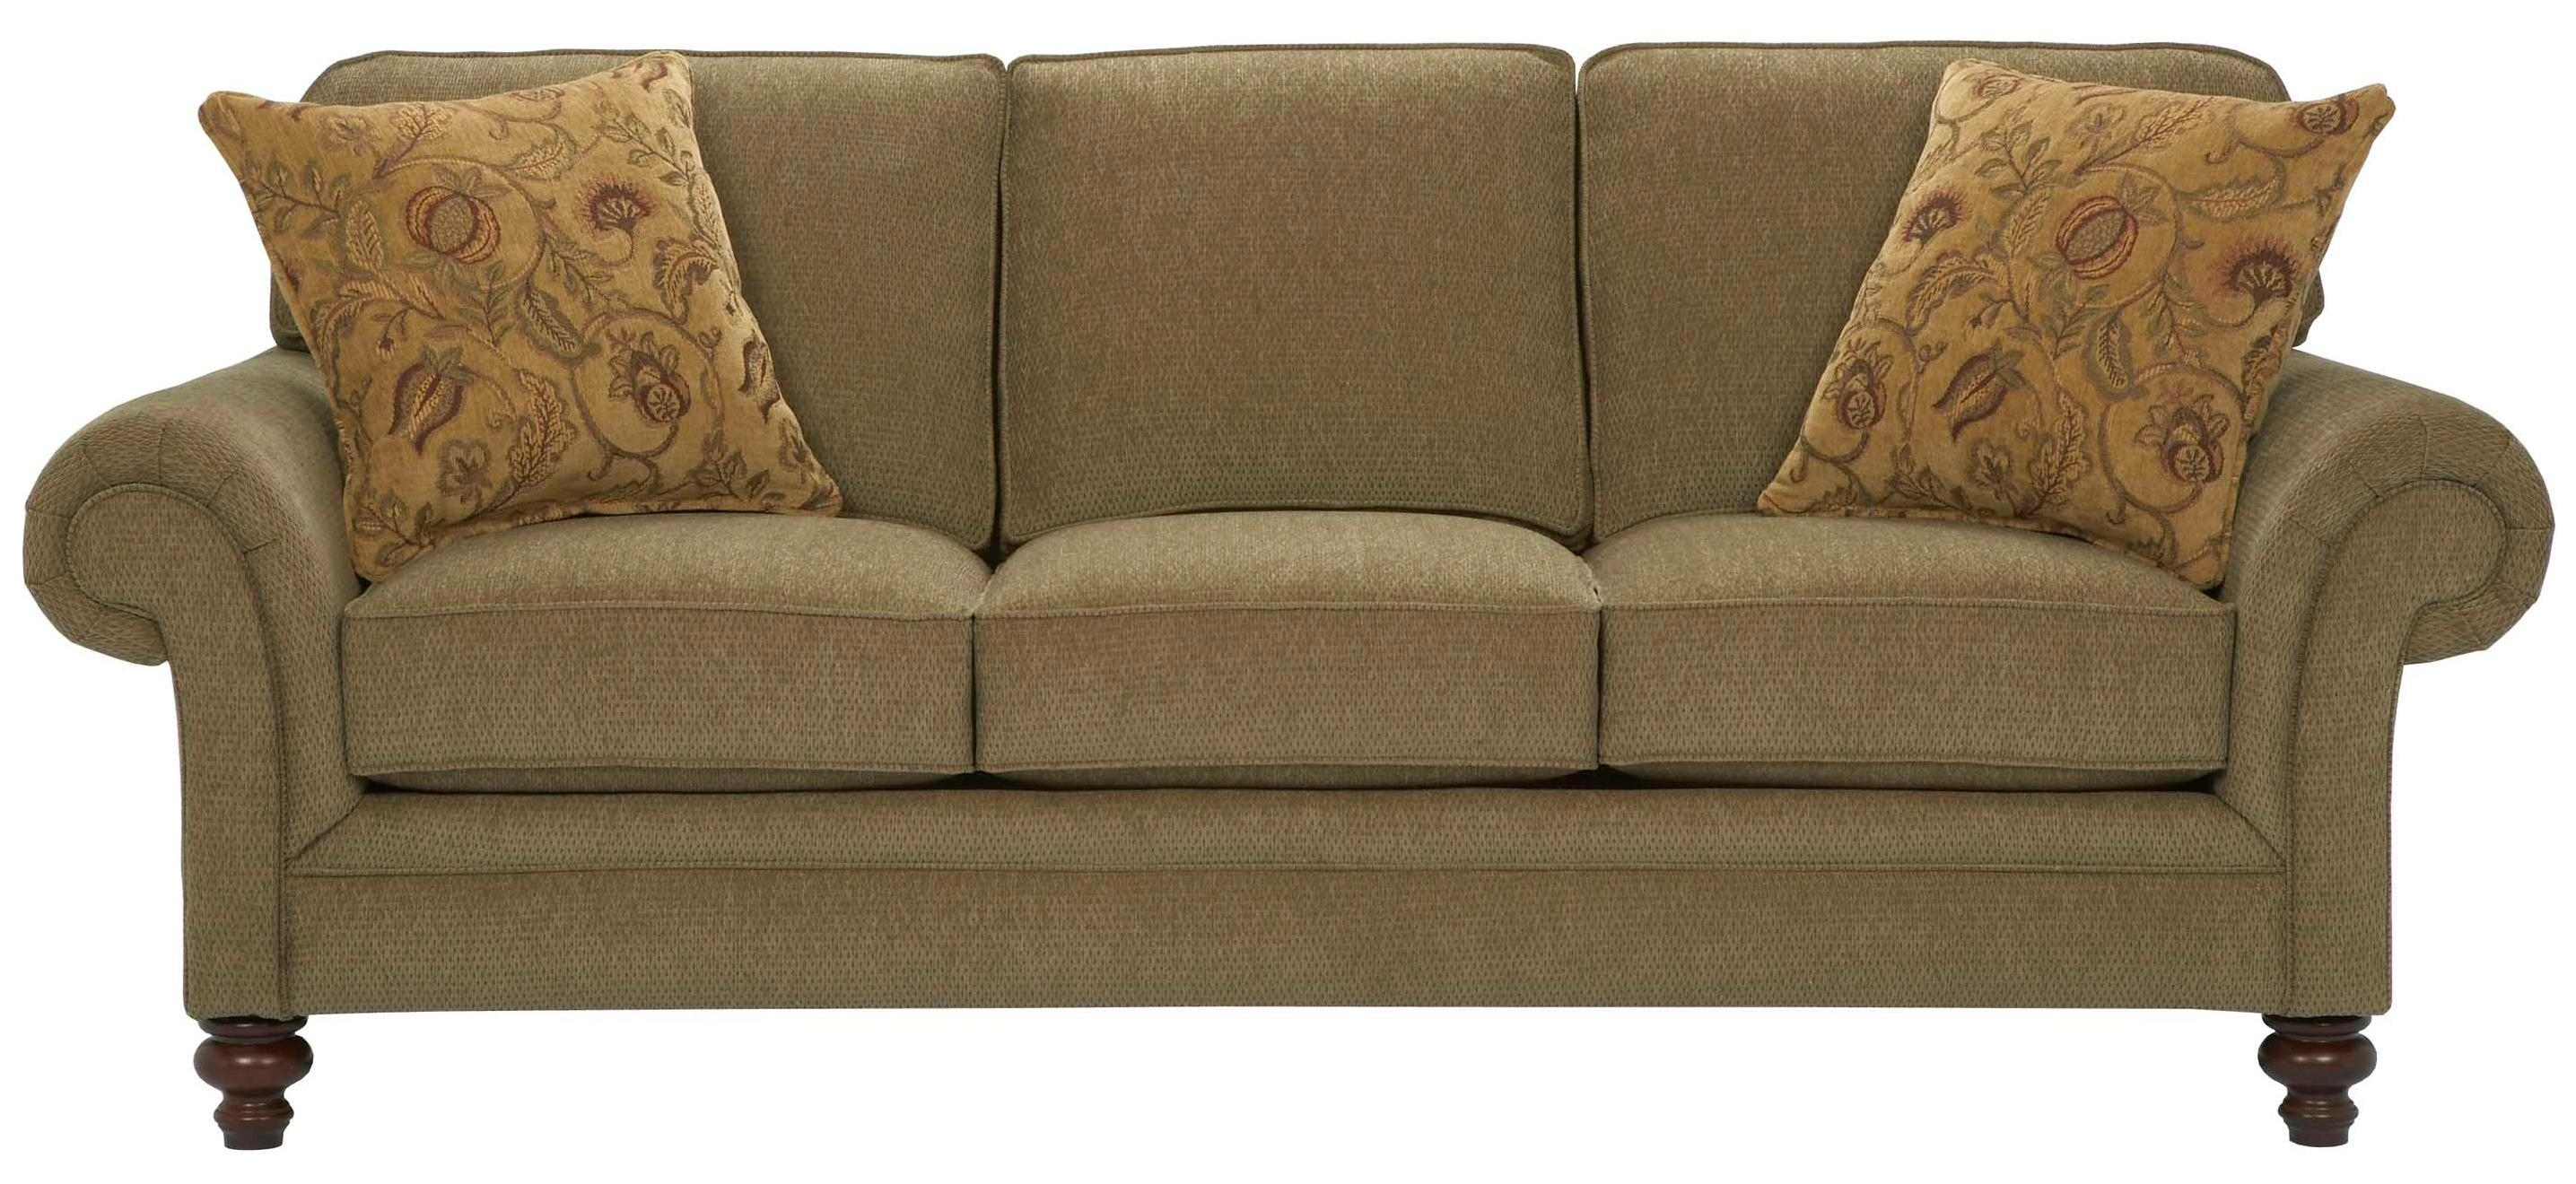 Broyhill Harrison Sofa With Ideas Photo 26599 | Kengire With Broyhill Harrison Sofas (Image 11 of 20)